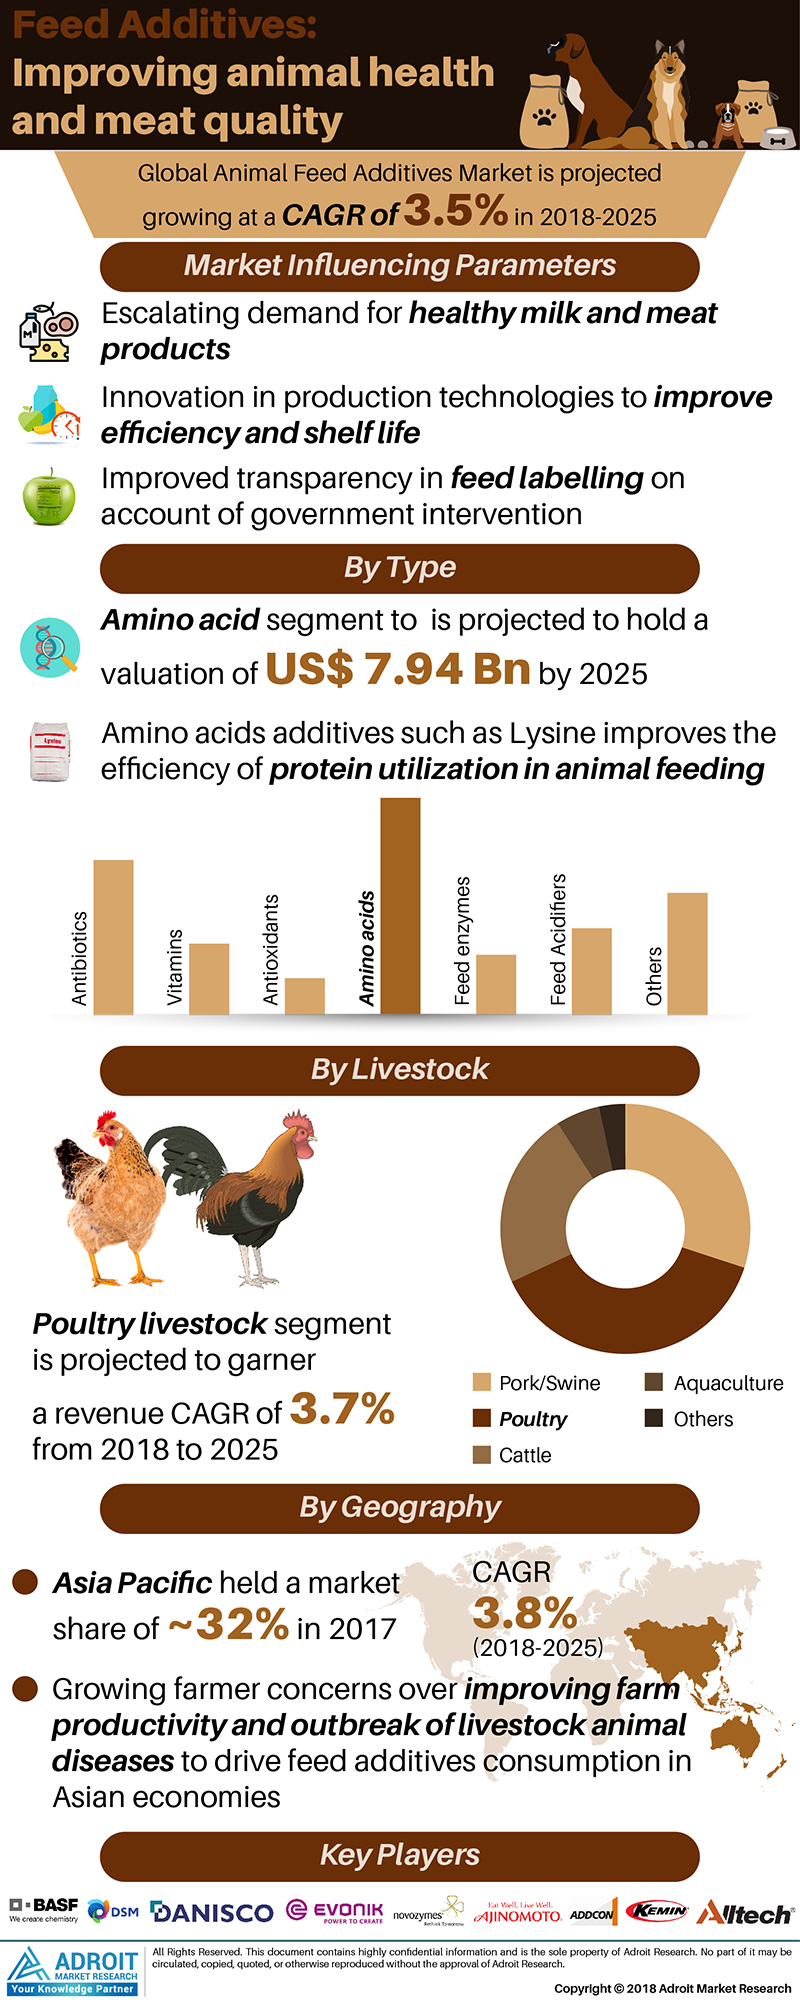 Global Animal Feed Additives Market Size 2017 By Type, Livestock, Region and Forecast 2018 to 2025